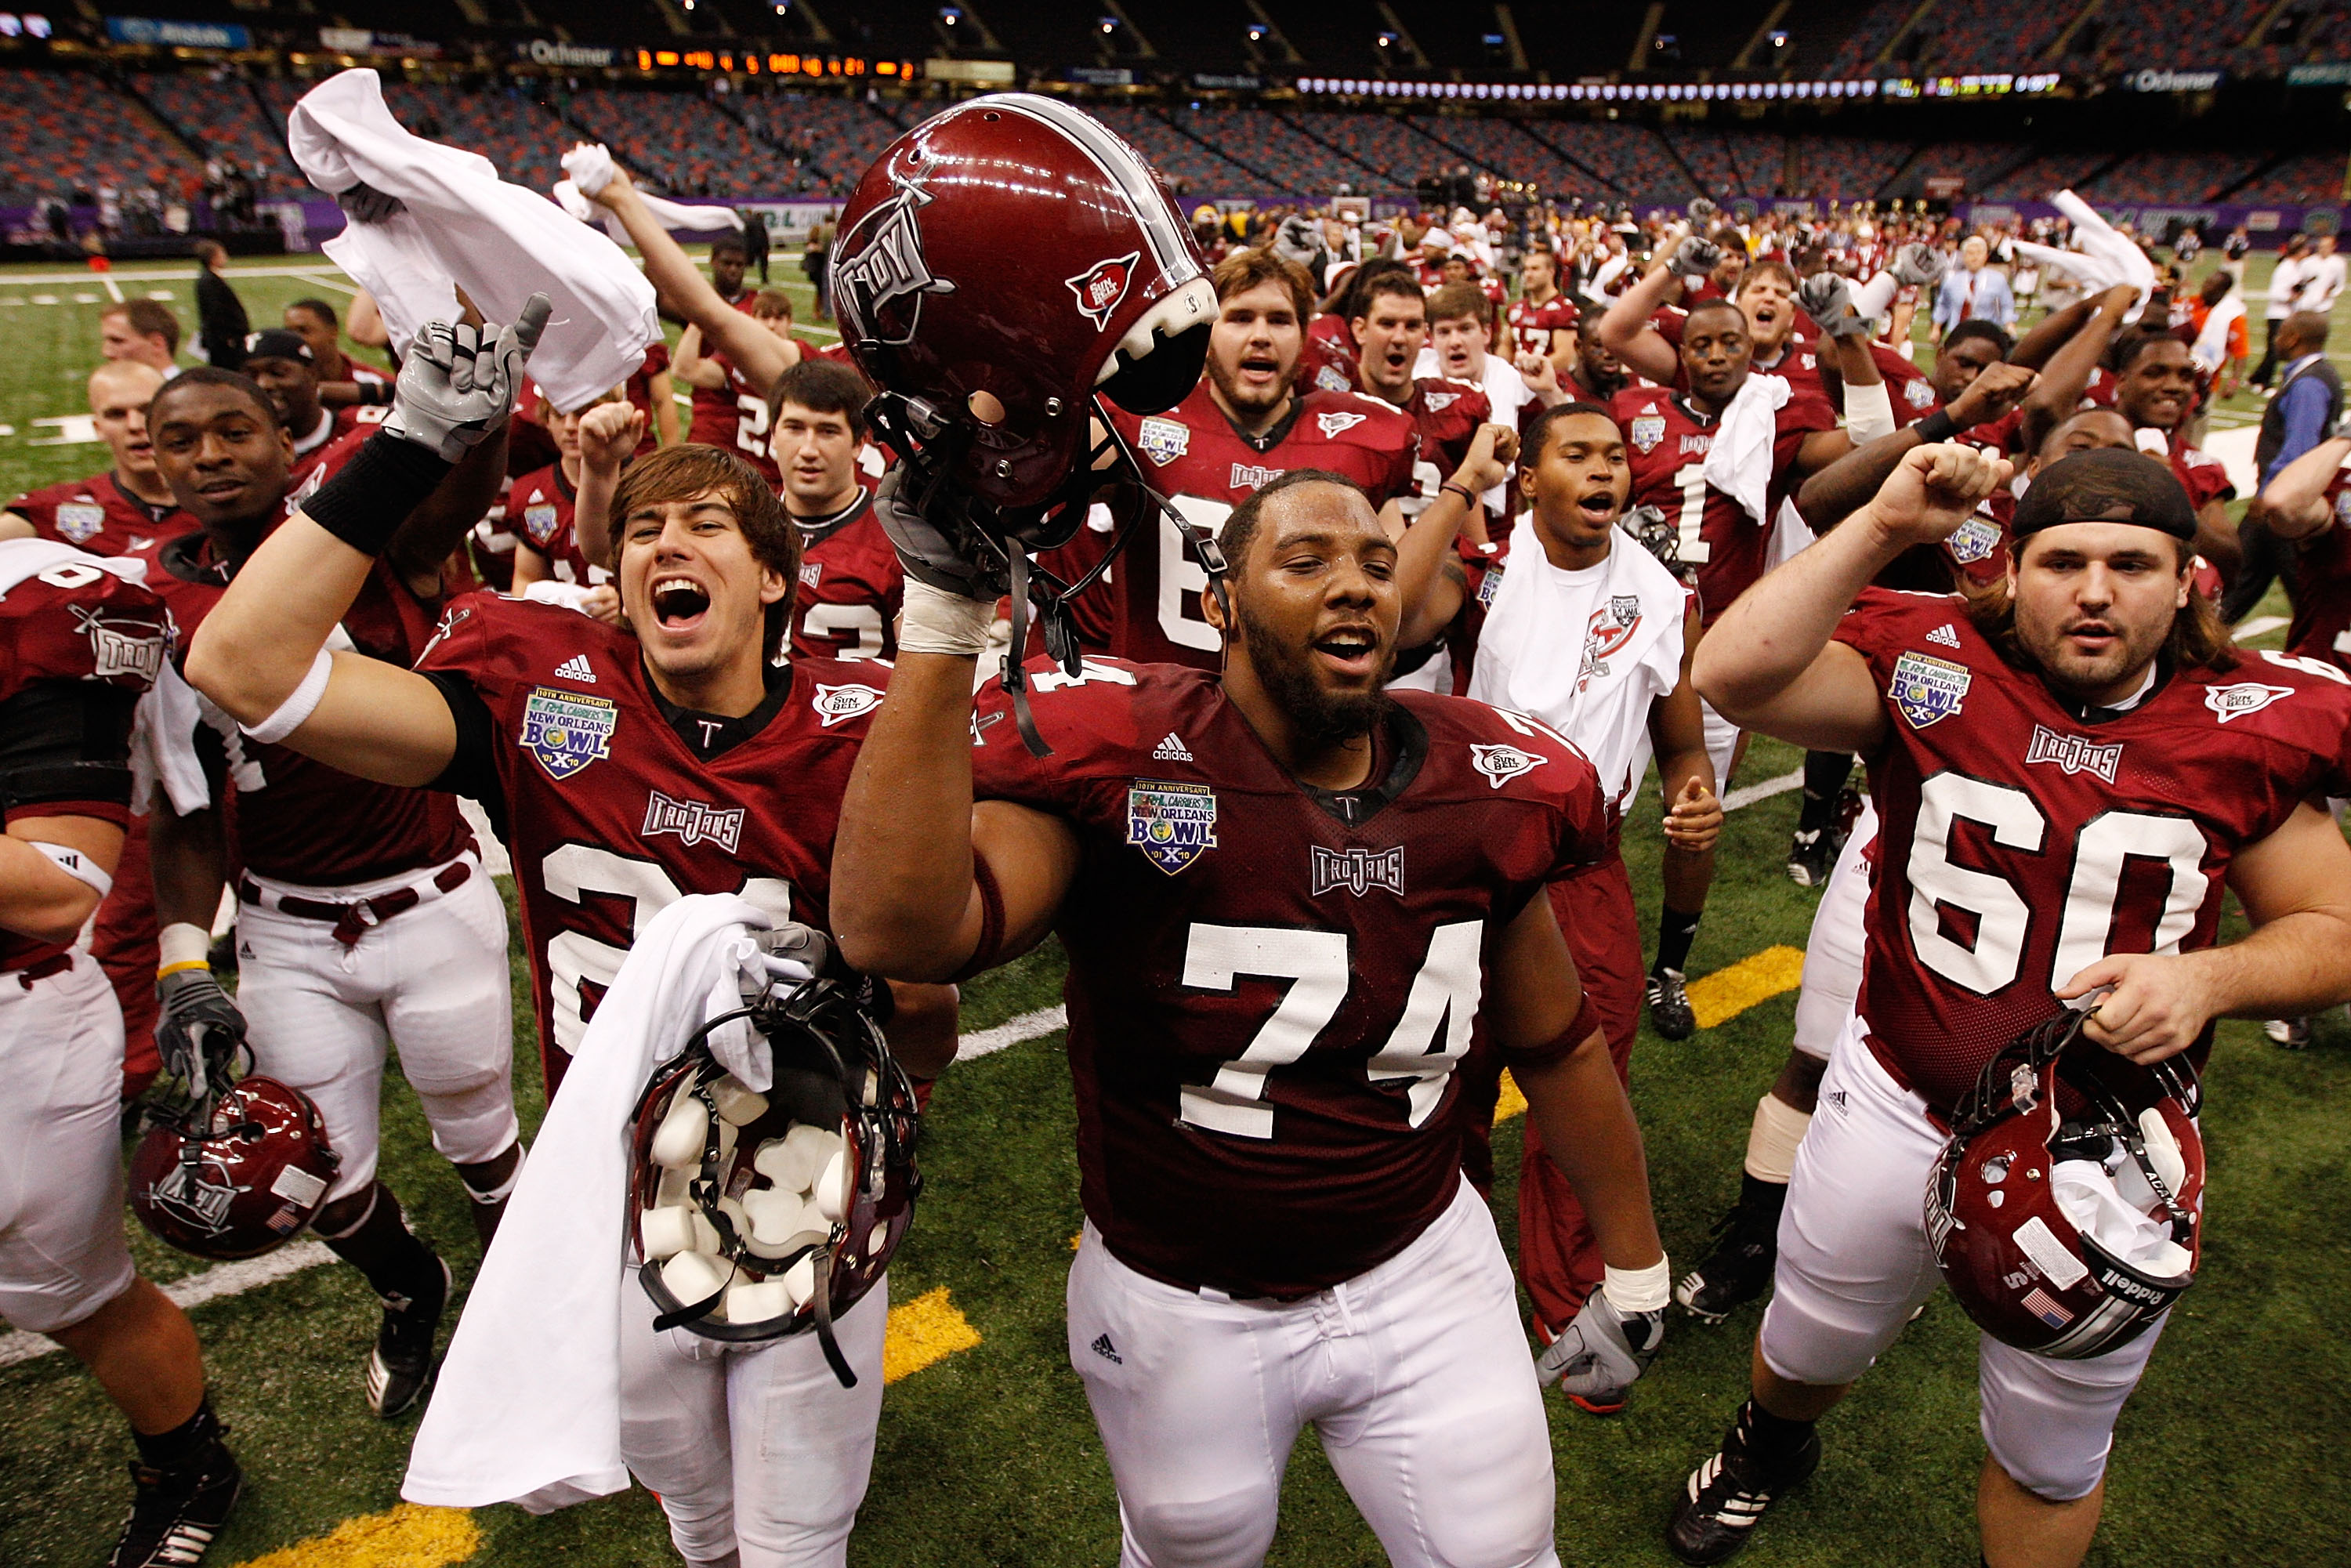 NEW ORLEANS, LA - DECEMBER 18:  Members of the Troy University Trojans celebrate after defeating the Ohio University Bobcats 48-21 during the R&L Carriers New Orleans Bowl at the Louisiana Superdome on December 18, 2010 in New Orleans, Louisiana.  (Photo